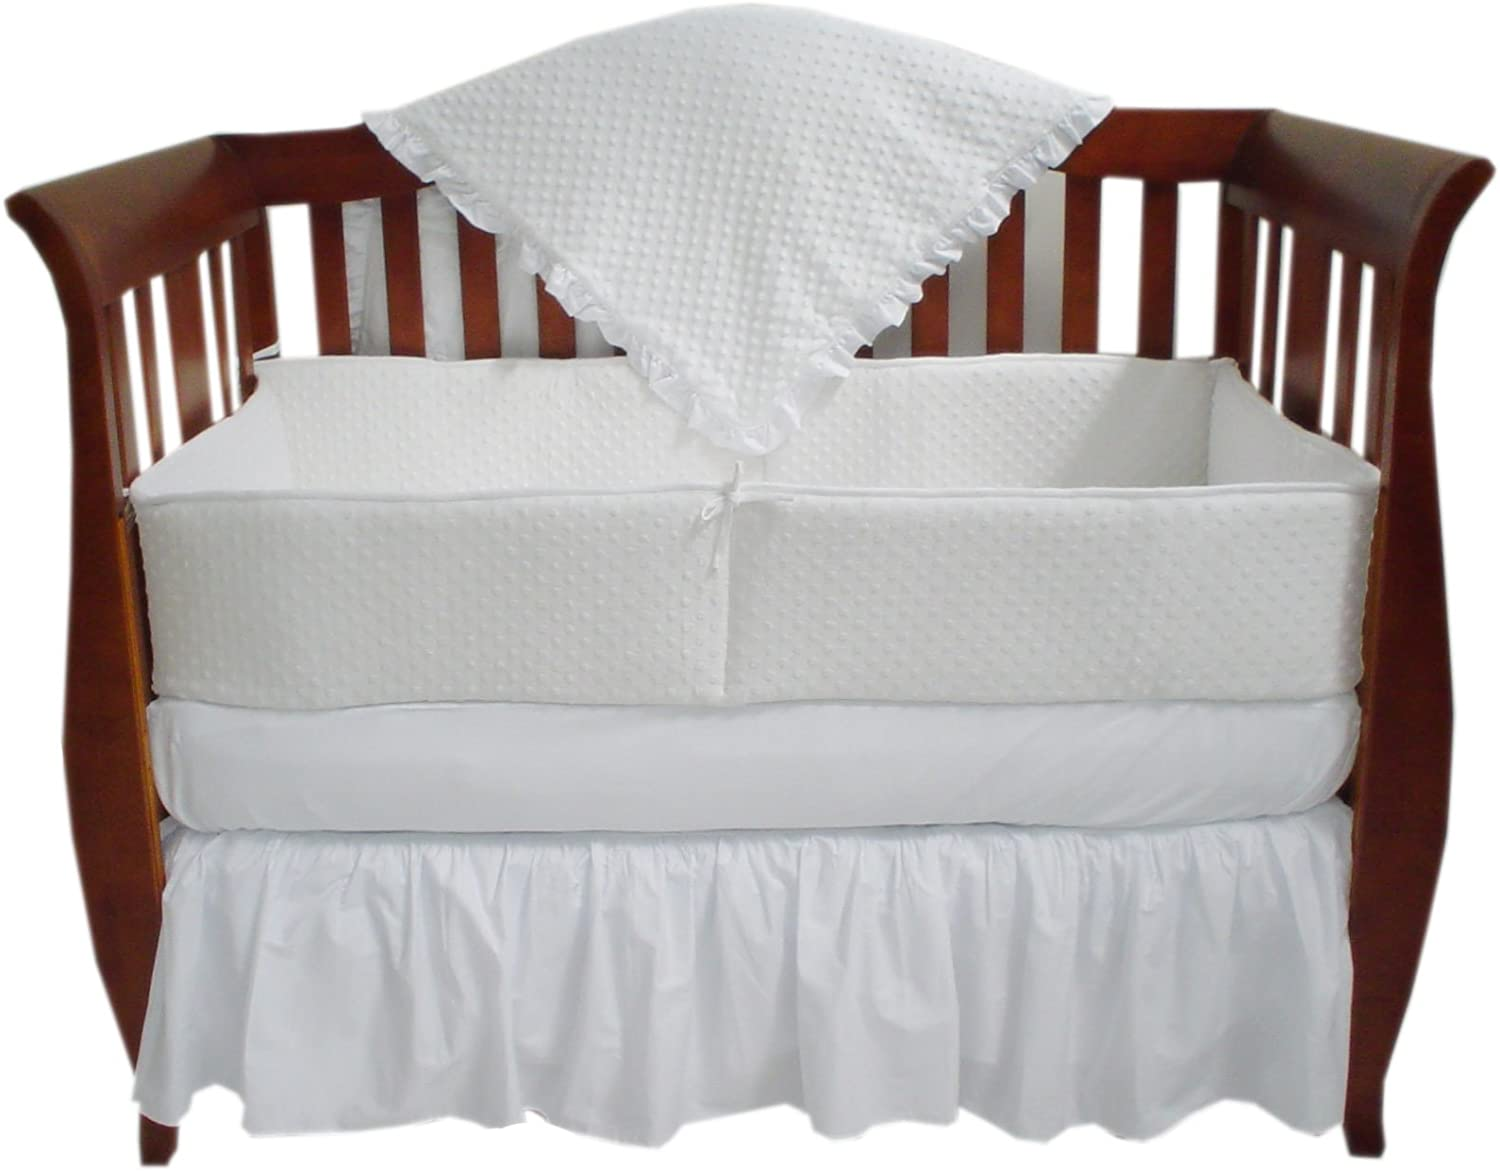 TL Care Heavenly Soft Minky Dot 4 Piece Crib Set, White by TL Care